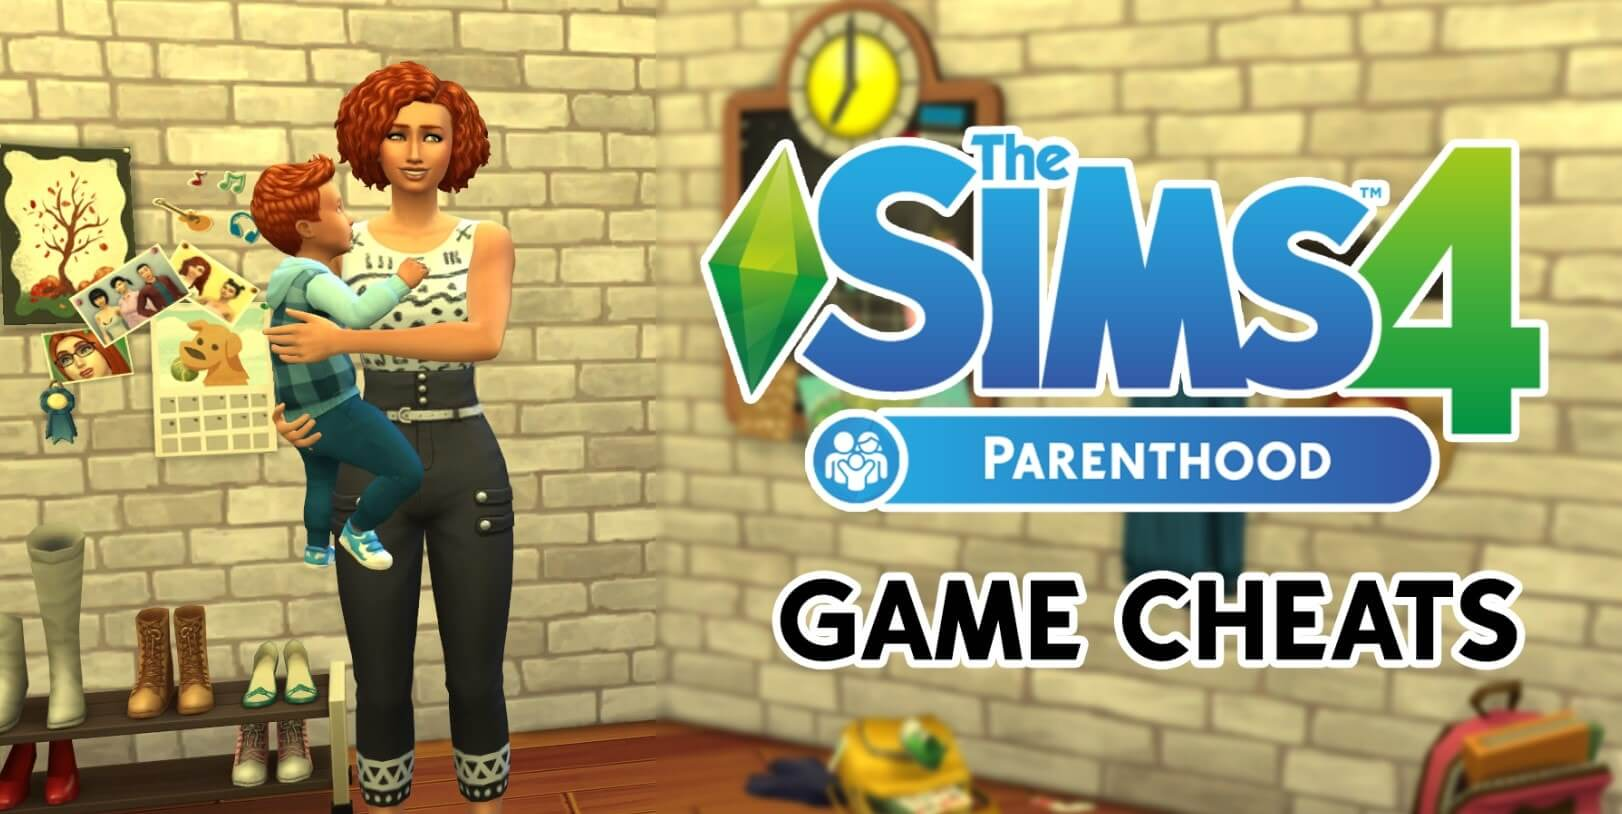 the sims 4 Parenthood Cheats and character value cheats